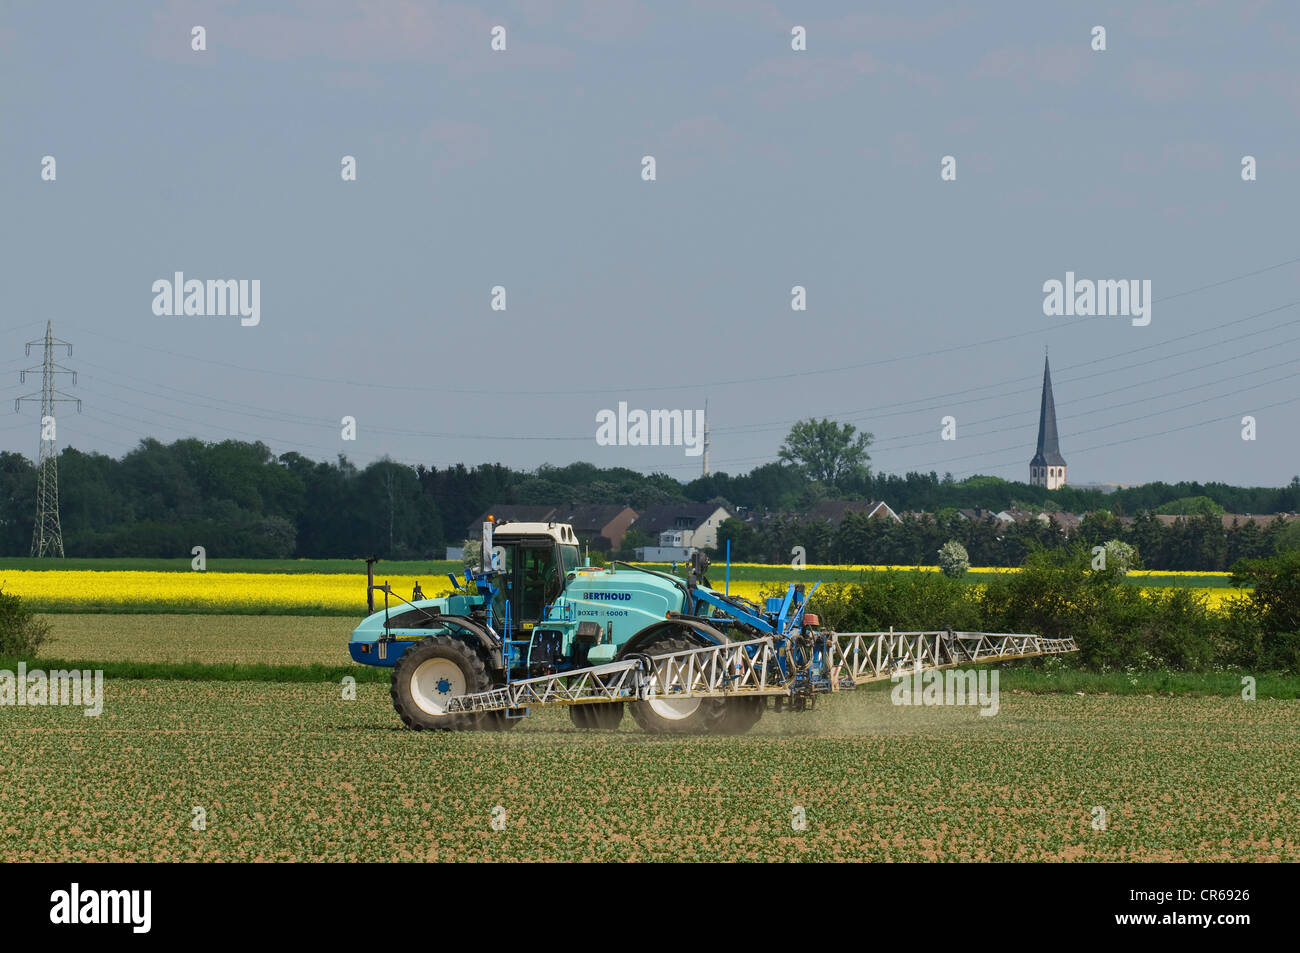 Self-propelled sprayer in use on field of beet, plant protection, agriculture - Stock Image